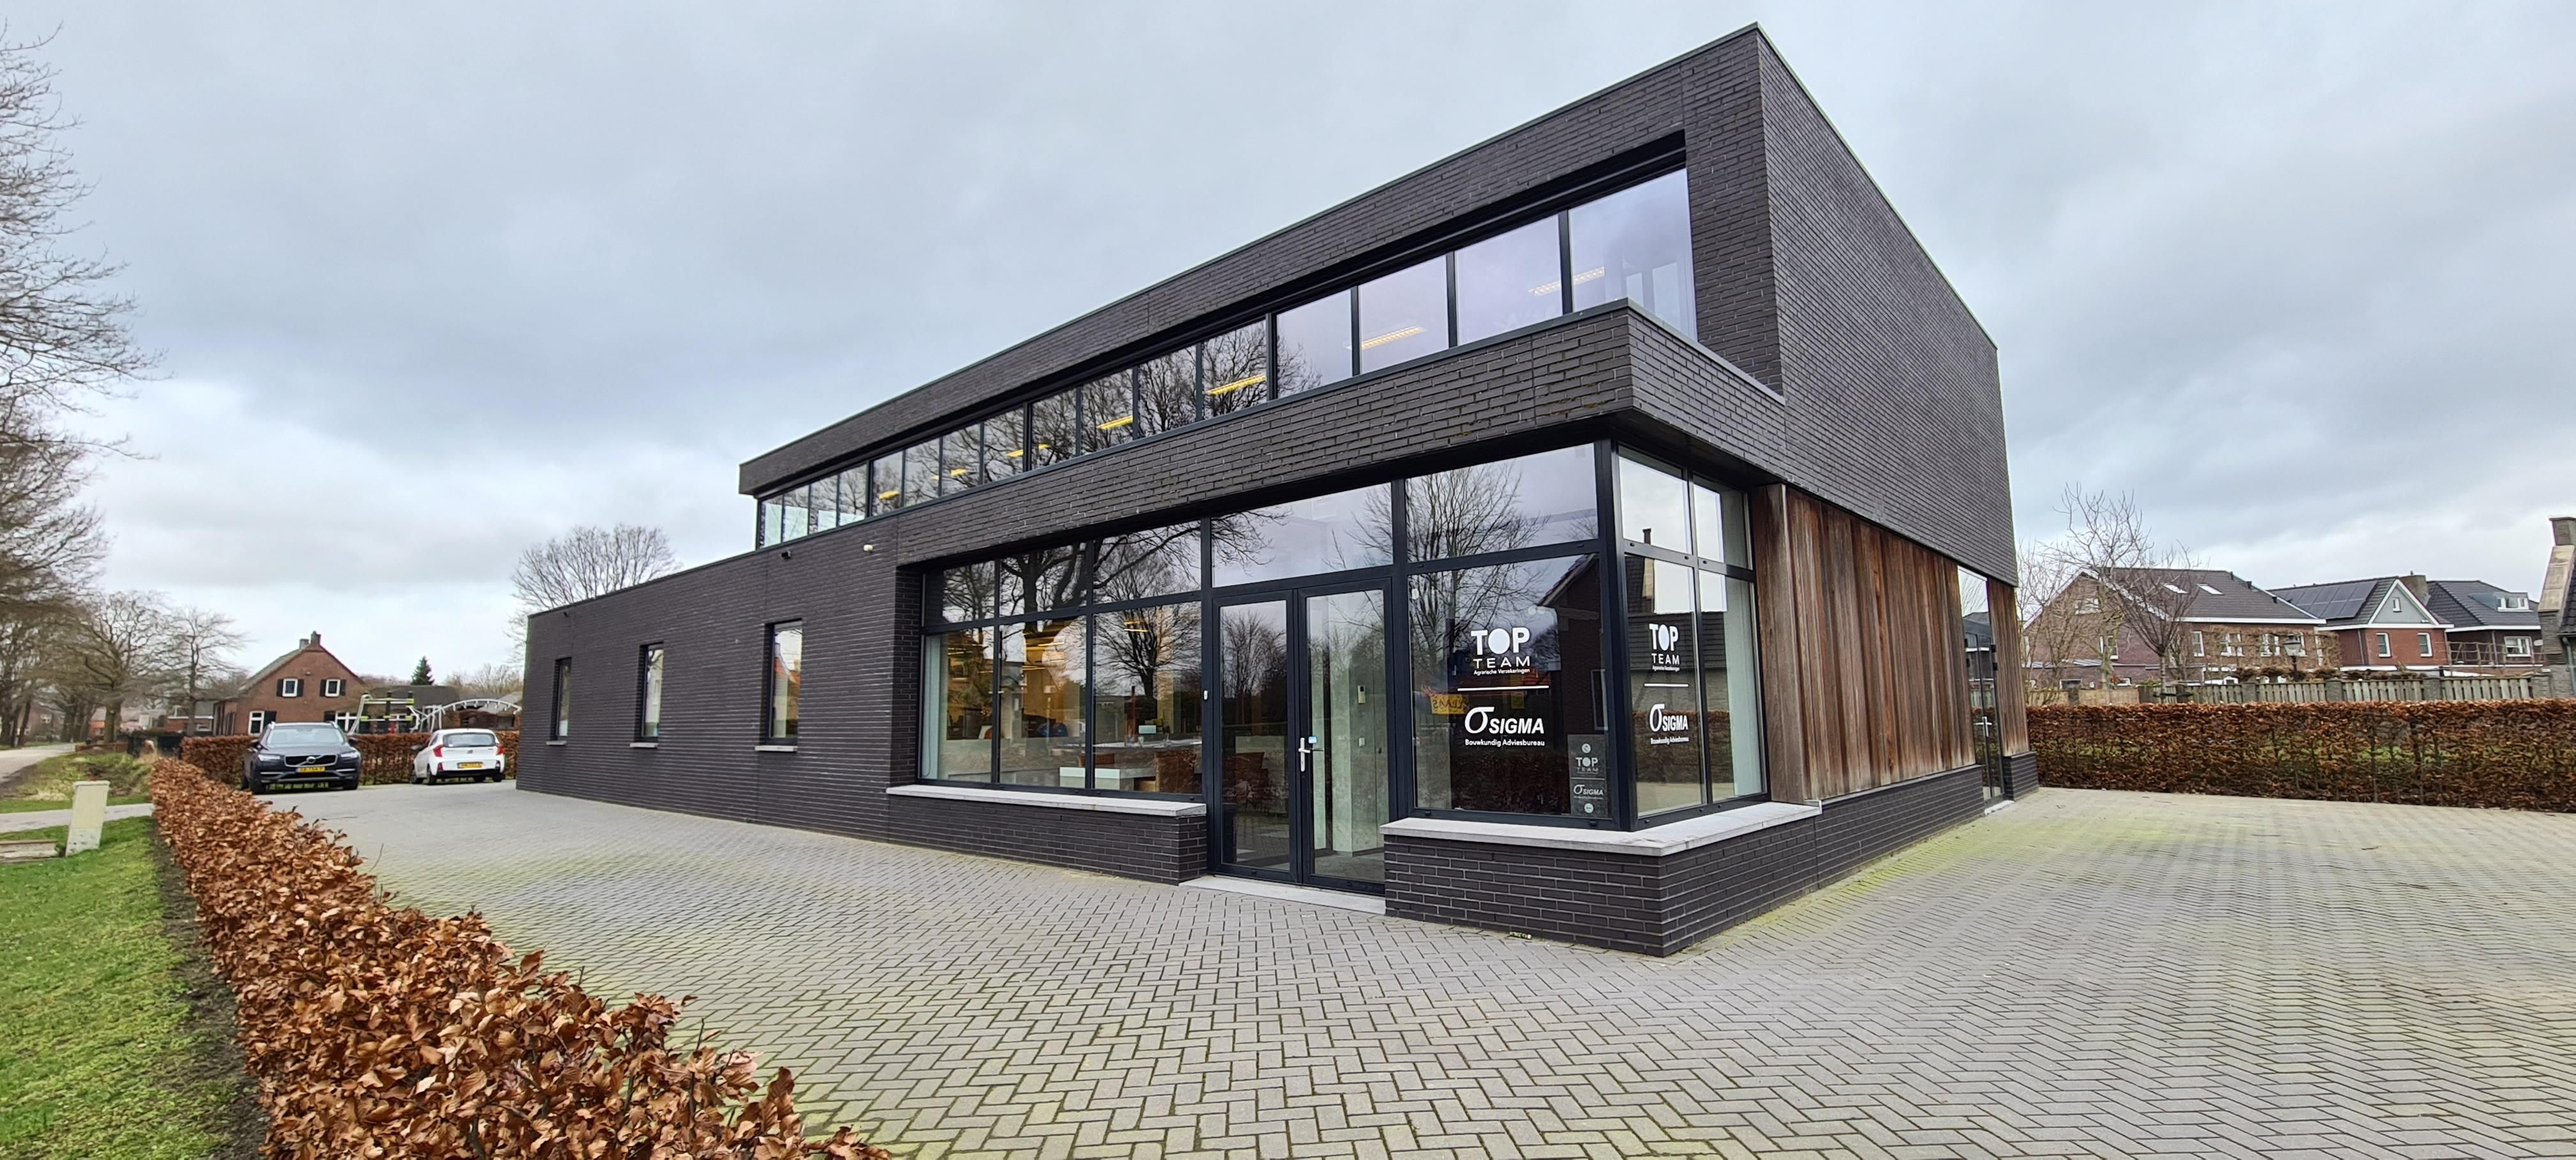 20210312_101812-81744c8f Vacature Tekenaar - Modelleur | Sigma Engineering